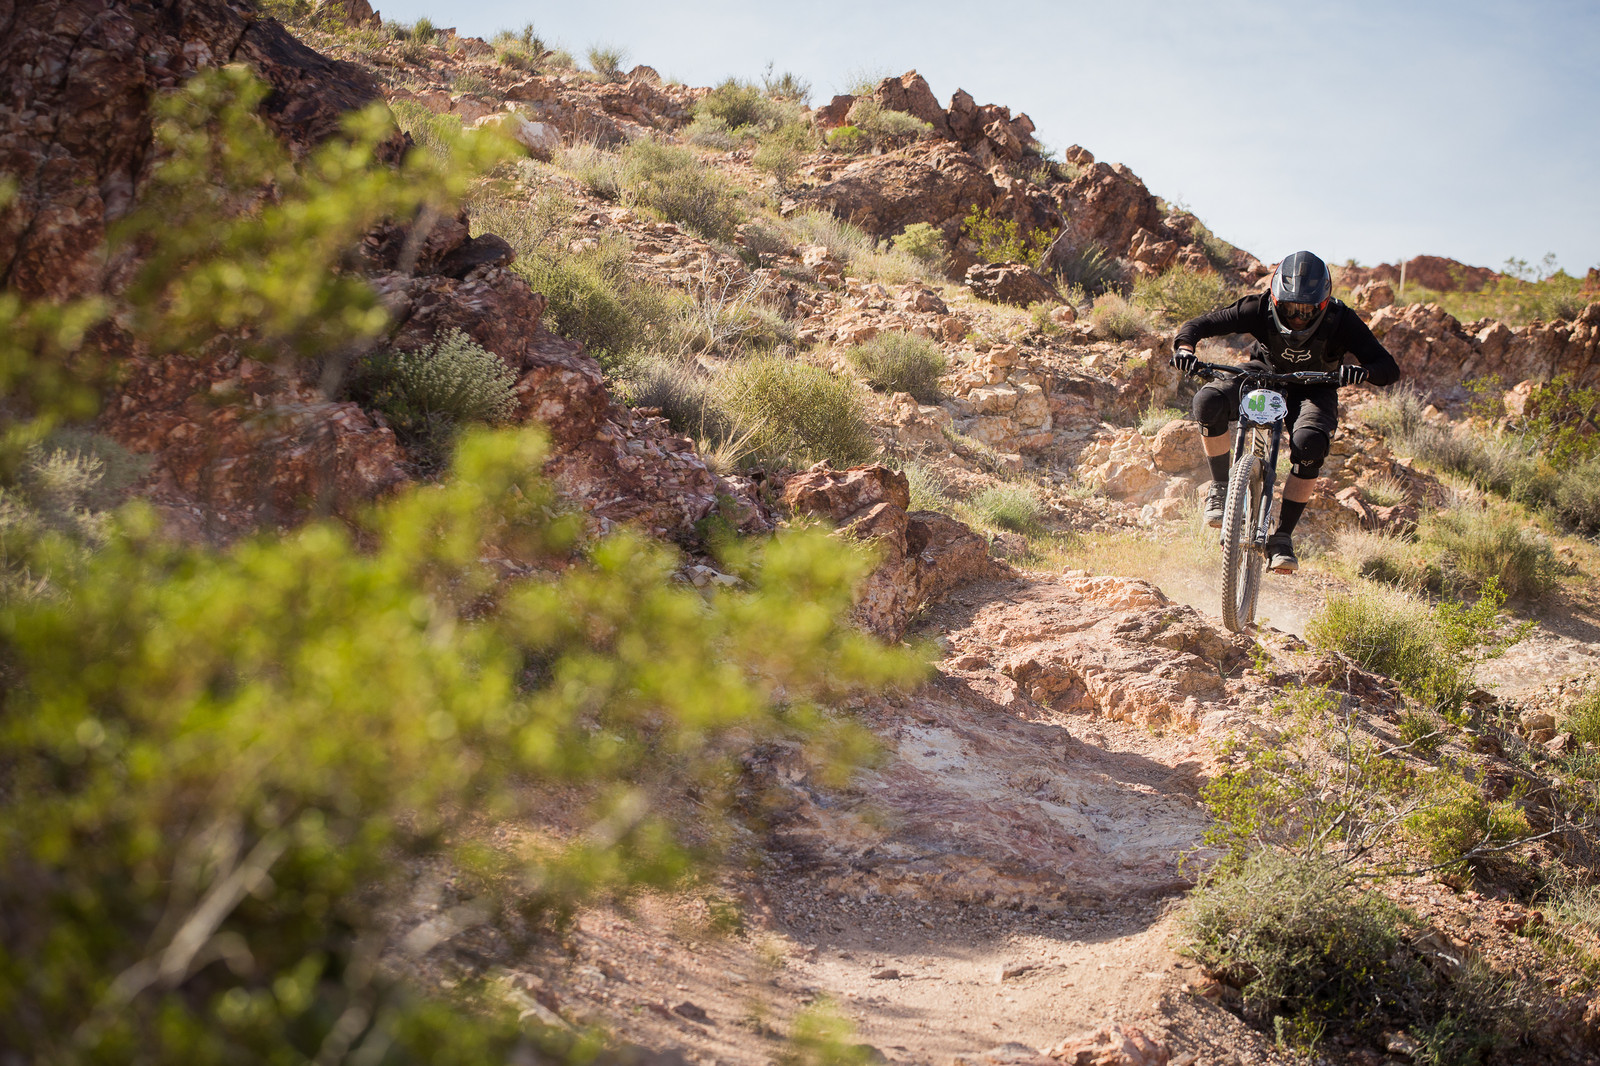 2017 Reaper Madness DH at Bootleg Canyon-16 - 2017 Reaper Madness DH Photos - Mountain Biking Pictures - Vital MTB